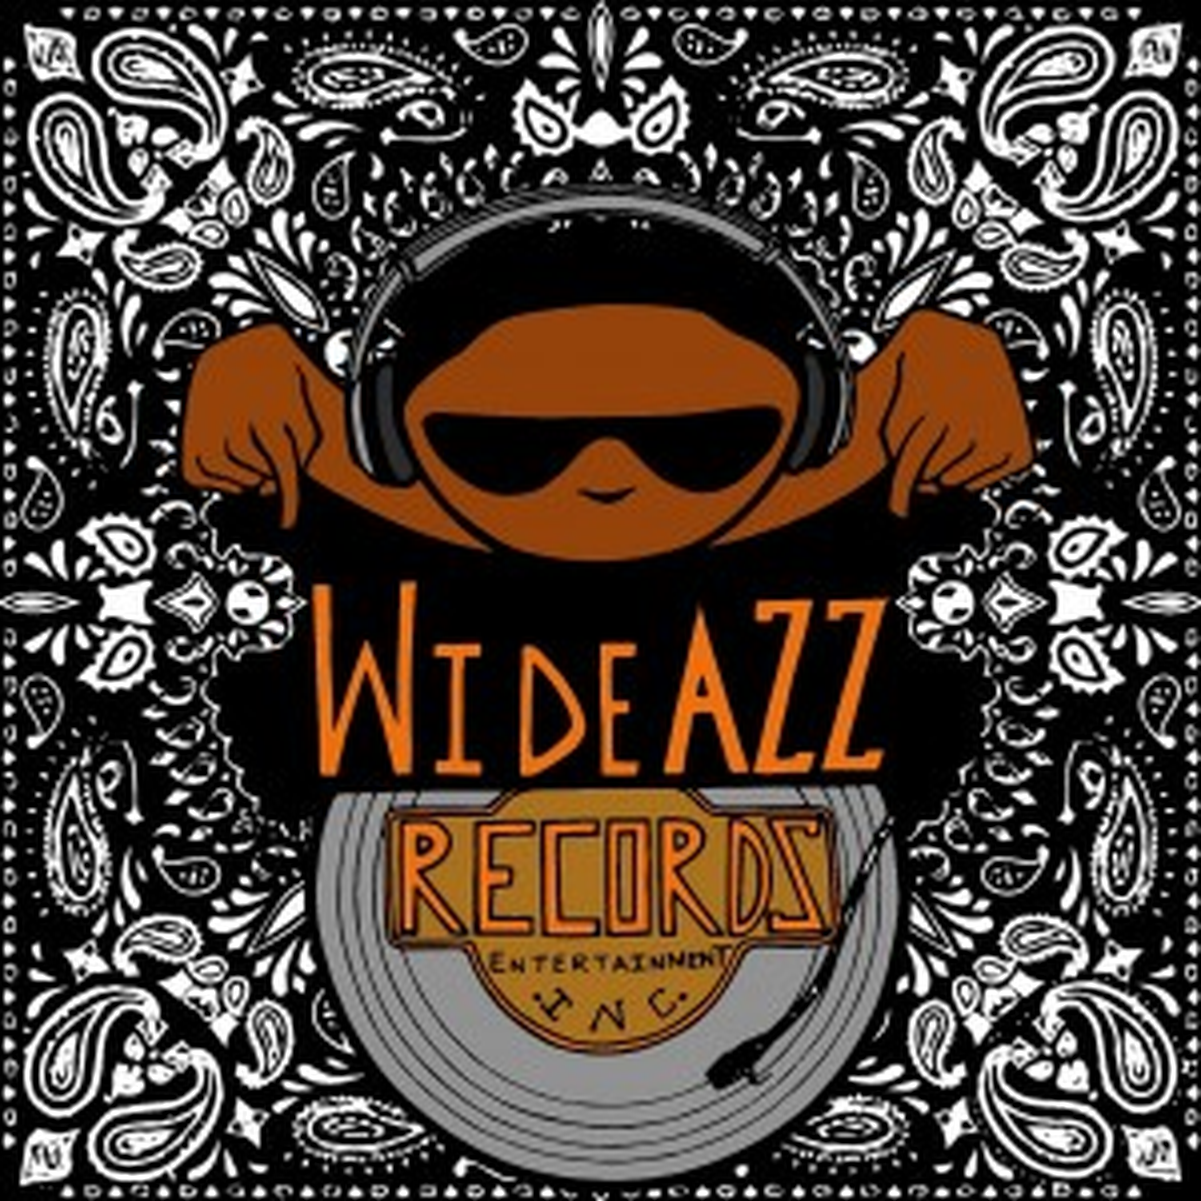 Wide Azz RECORDS ENT, INC